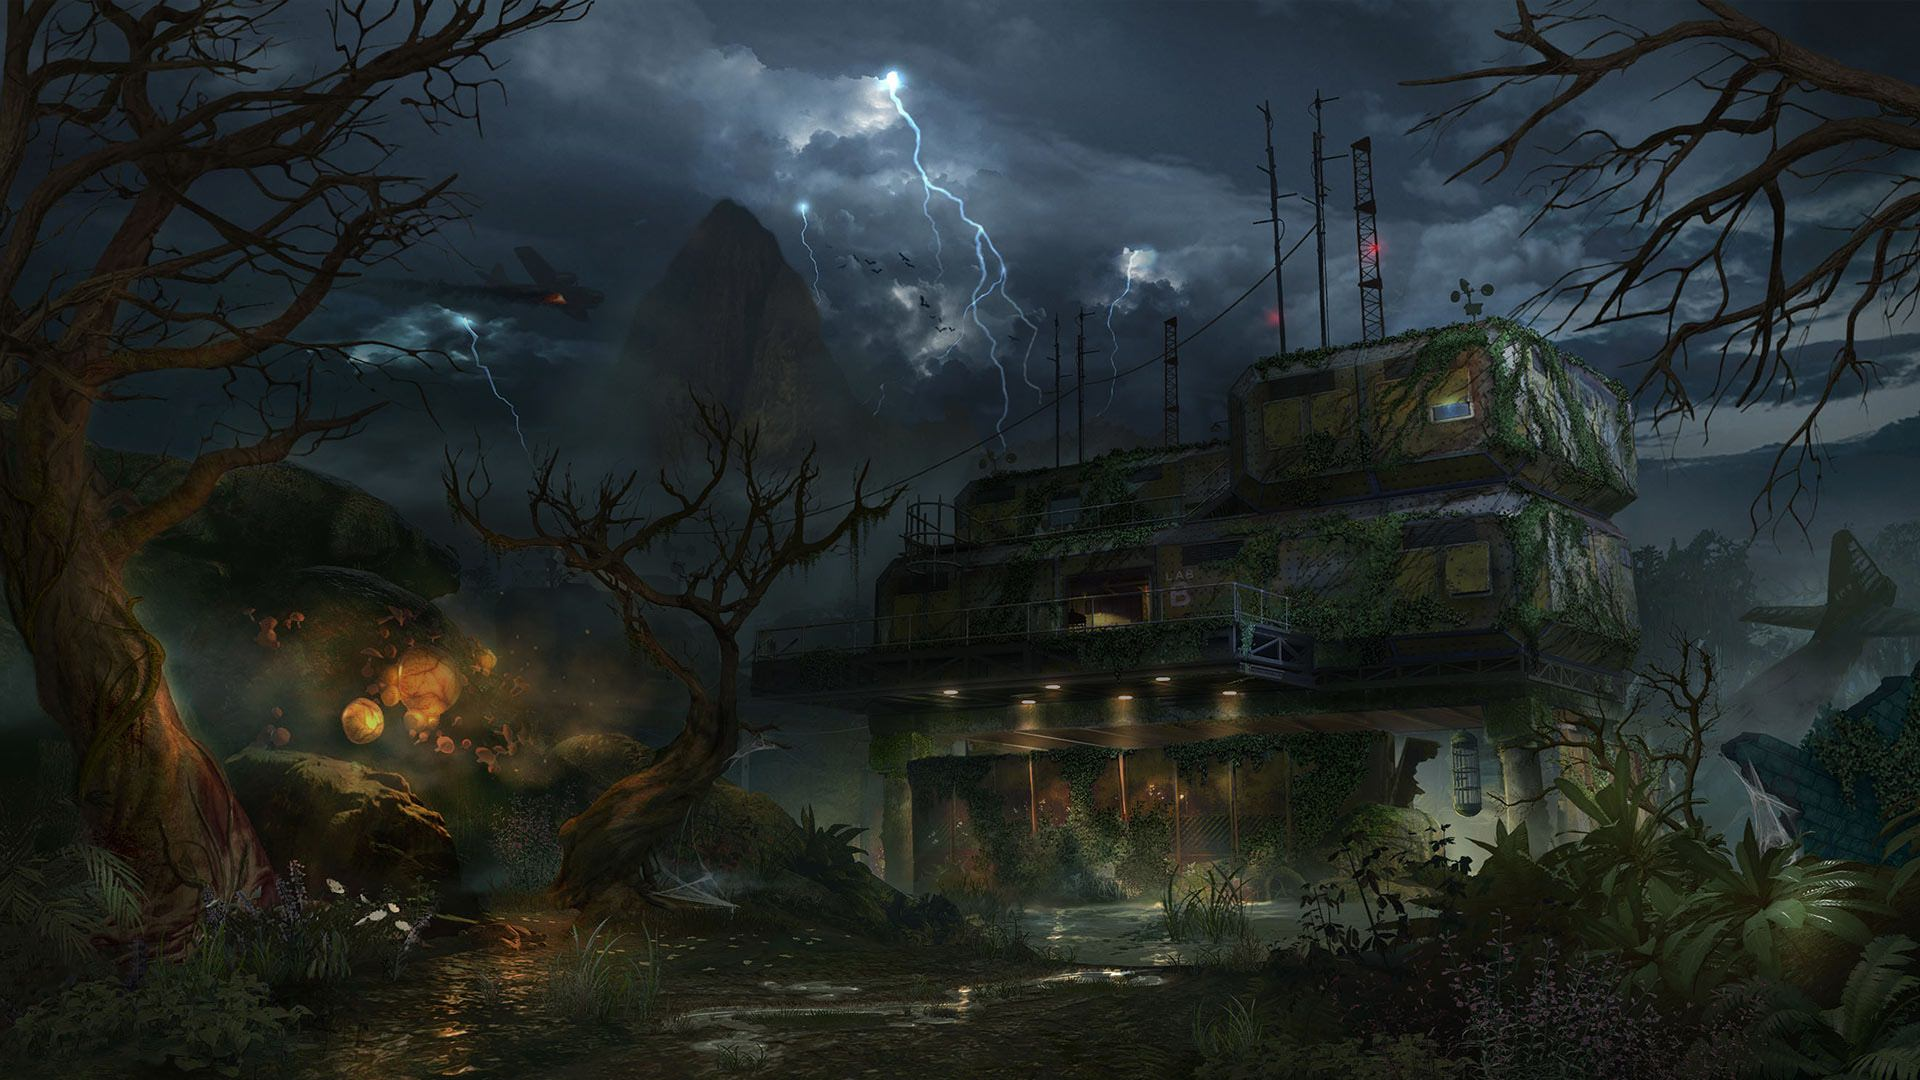 black ops zombie maps ps3 with Black Ops 3 Eclipse Dlc2 Announced Available April 19th On Ps4 on  additionally 21087 How Download Paint Jobs Call Duty Black Ops Iii additionally Call Of Duty Black Ops 2 Review Future Shock moreover Watch together with The Best Zombie Themed Games.